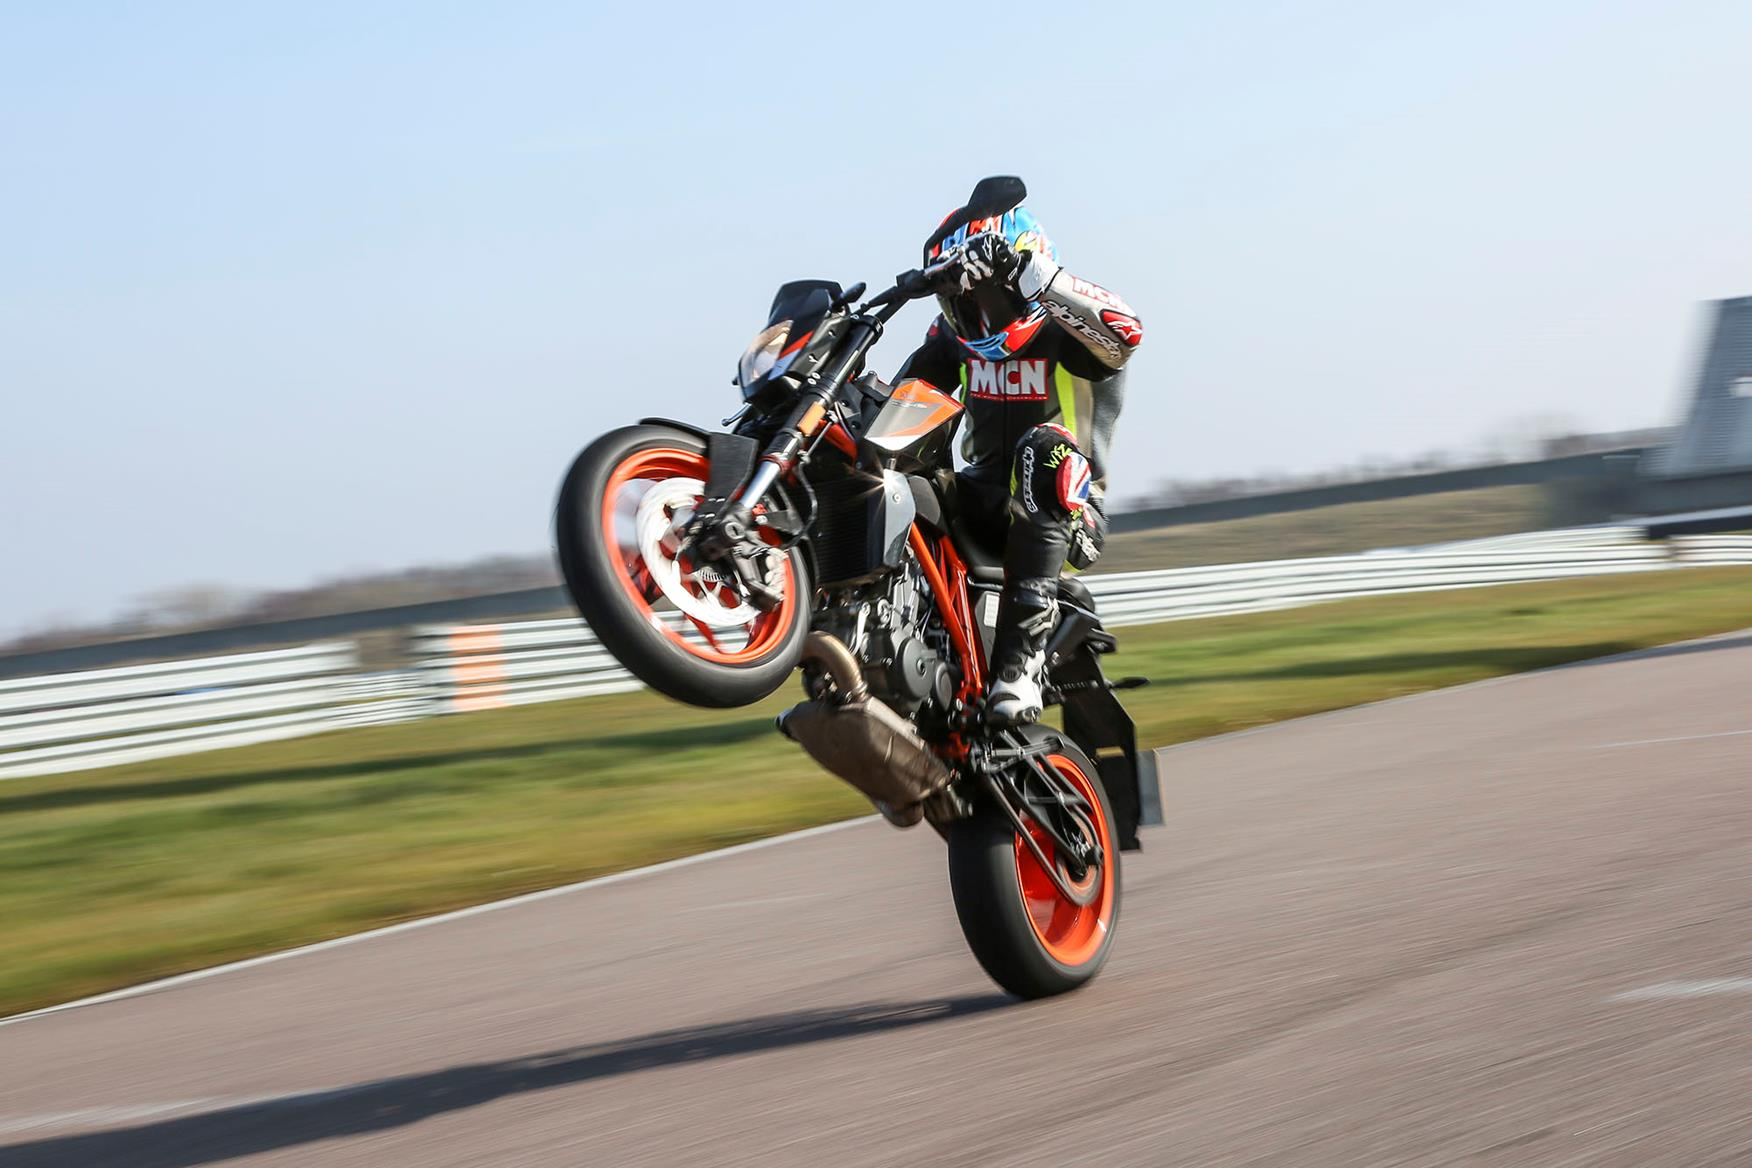 KTM 690 Duke R wheelie